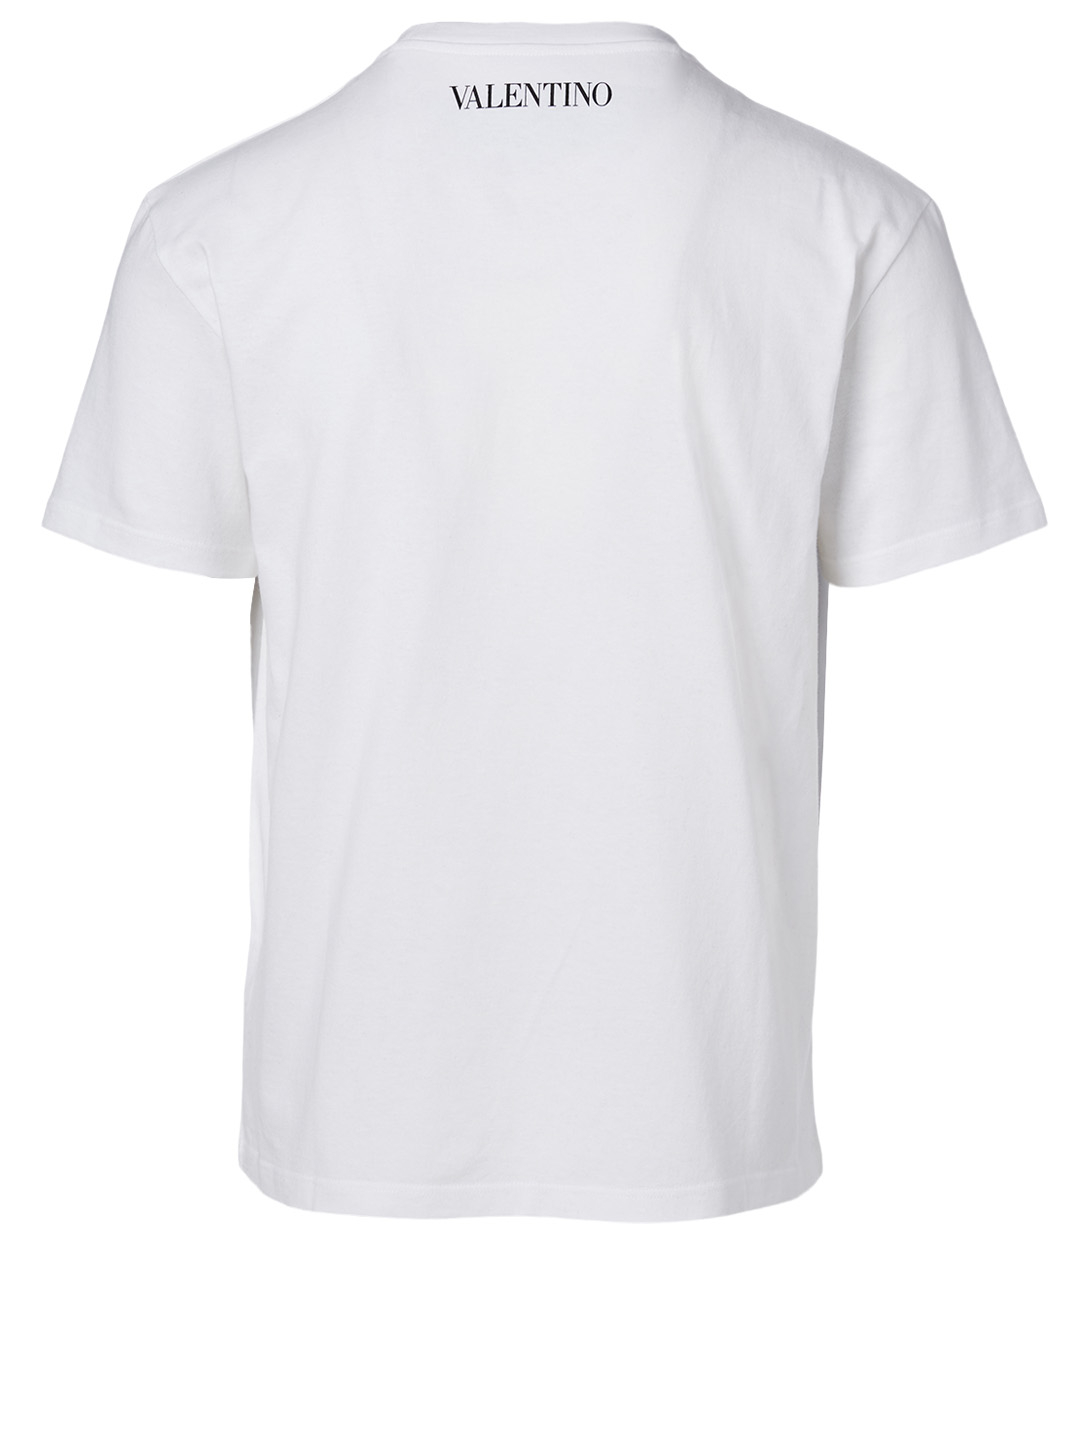 VALENTINO Cotton T-Shirt In Dragonfly Print Men's White